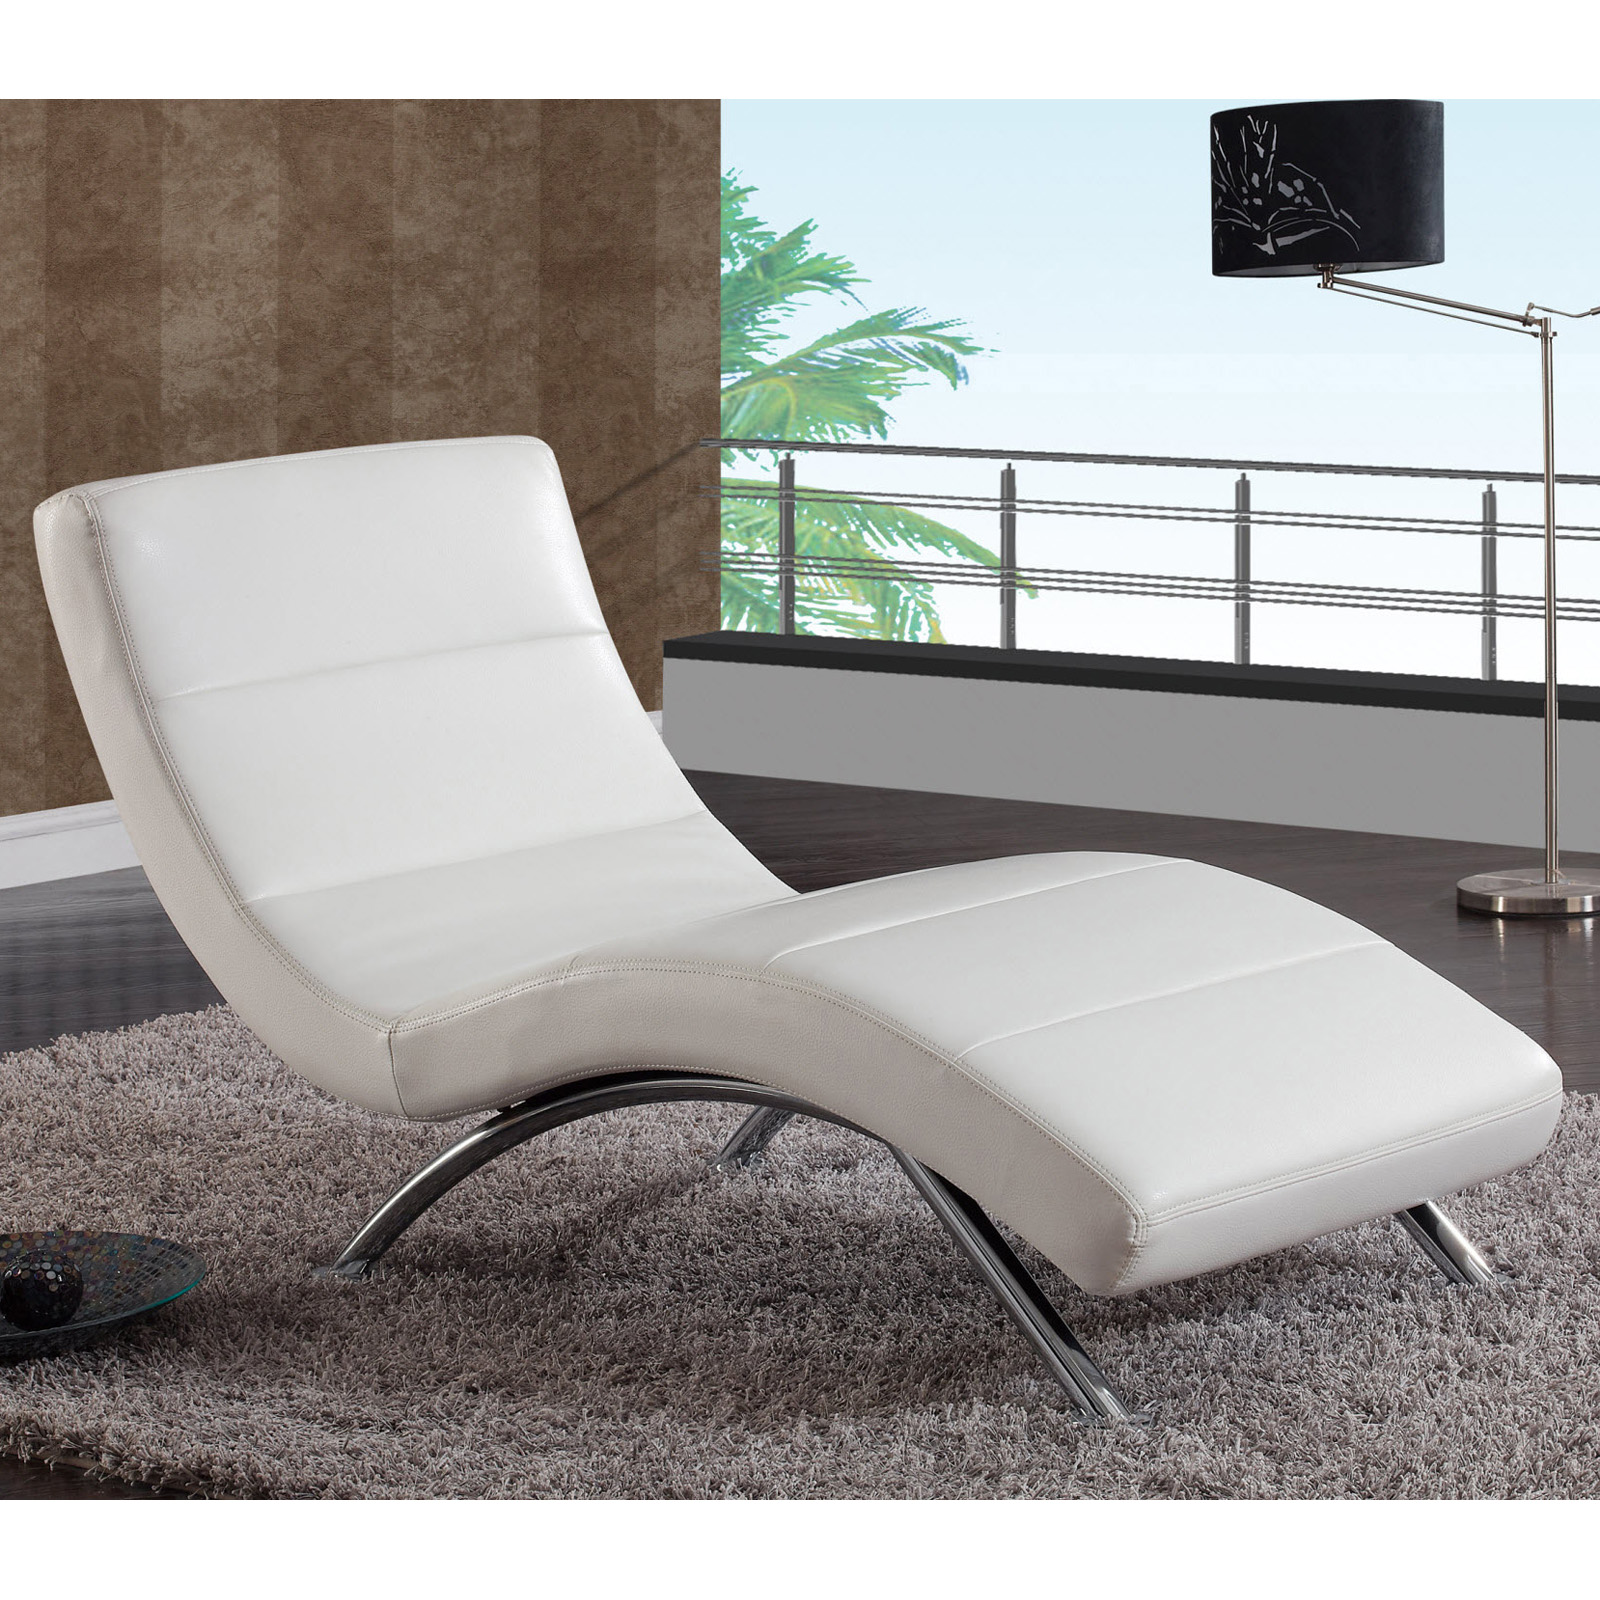 Global furniture r820 leather indoor chaise lounges for Chaise indoor lounge